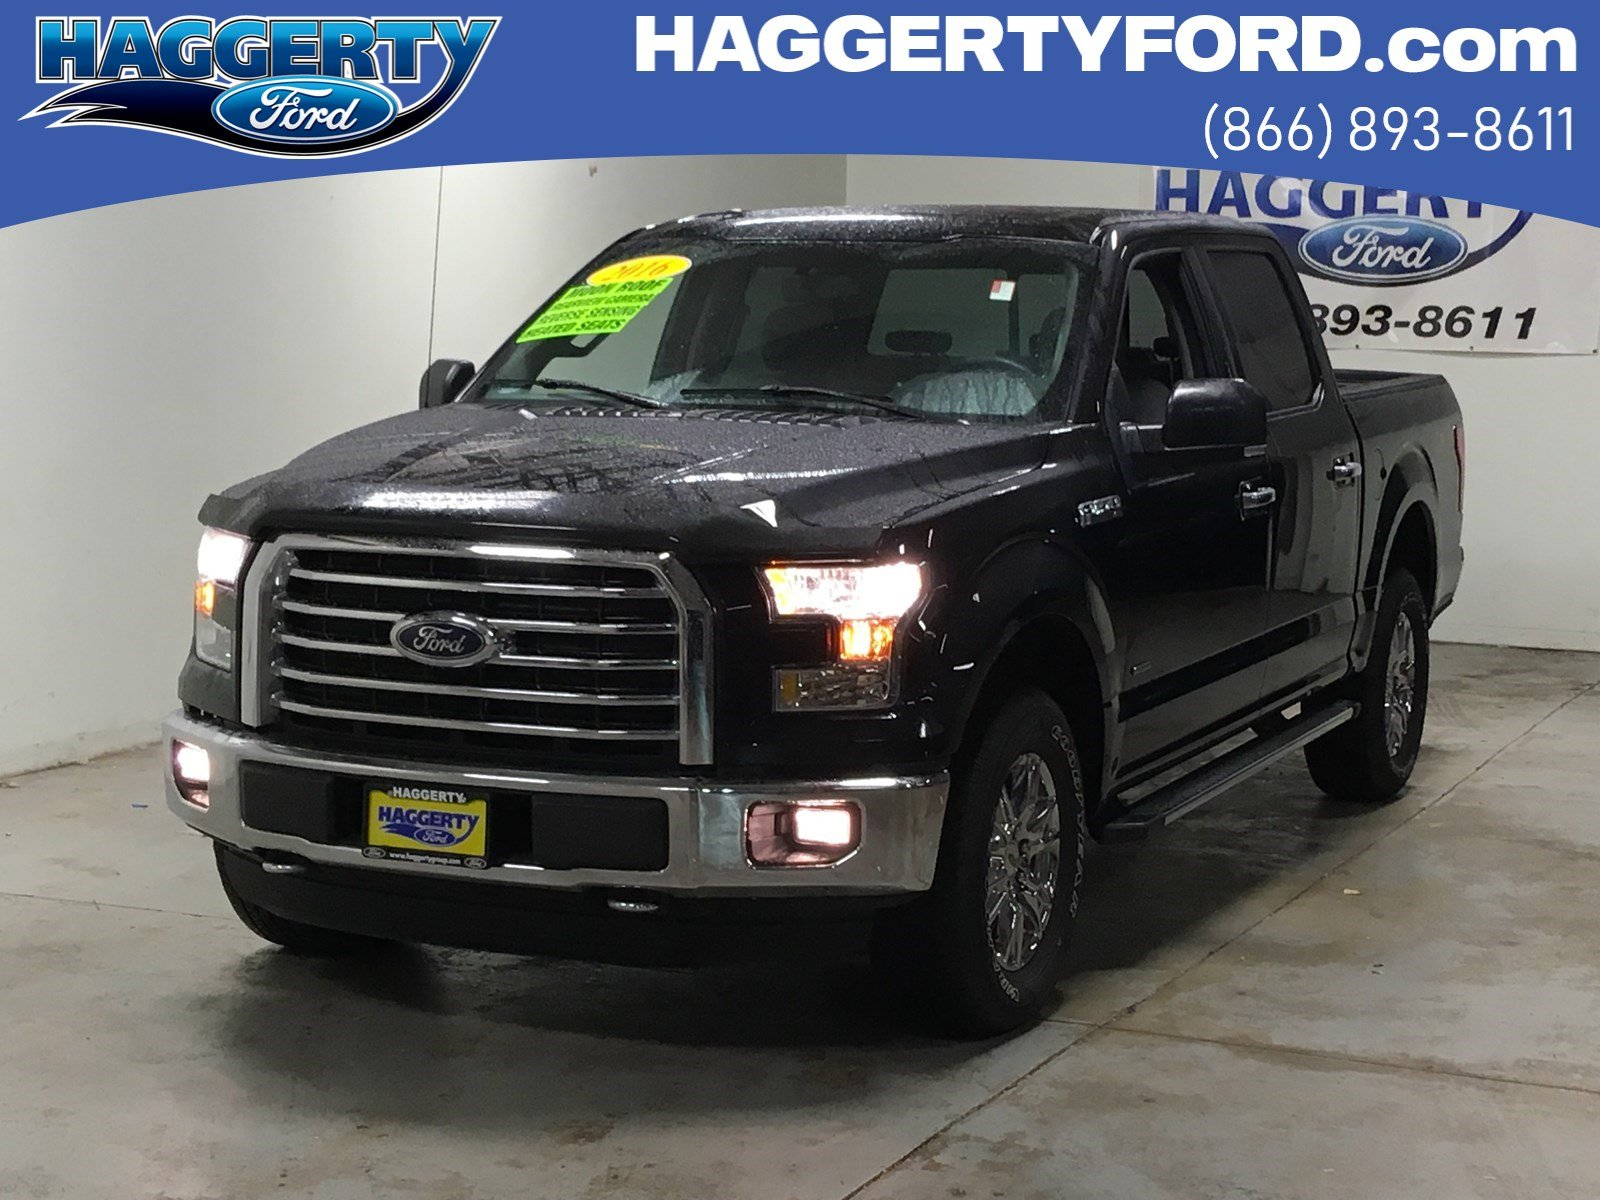 Certified Pre-Owned 2016 Ford F-150 XLT 302A Crew Cab